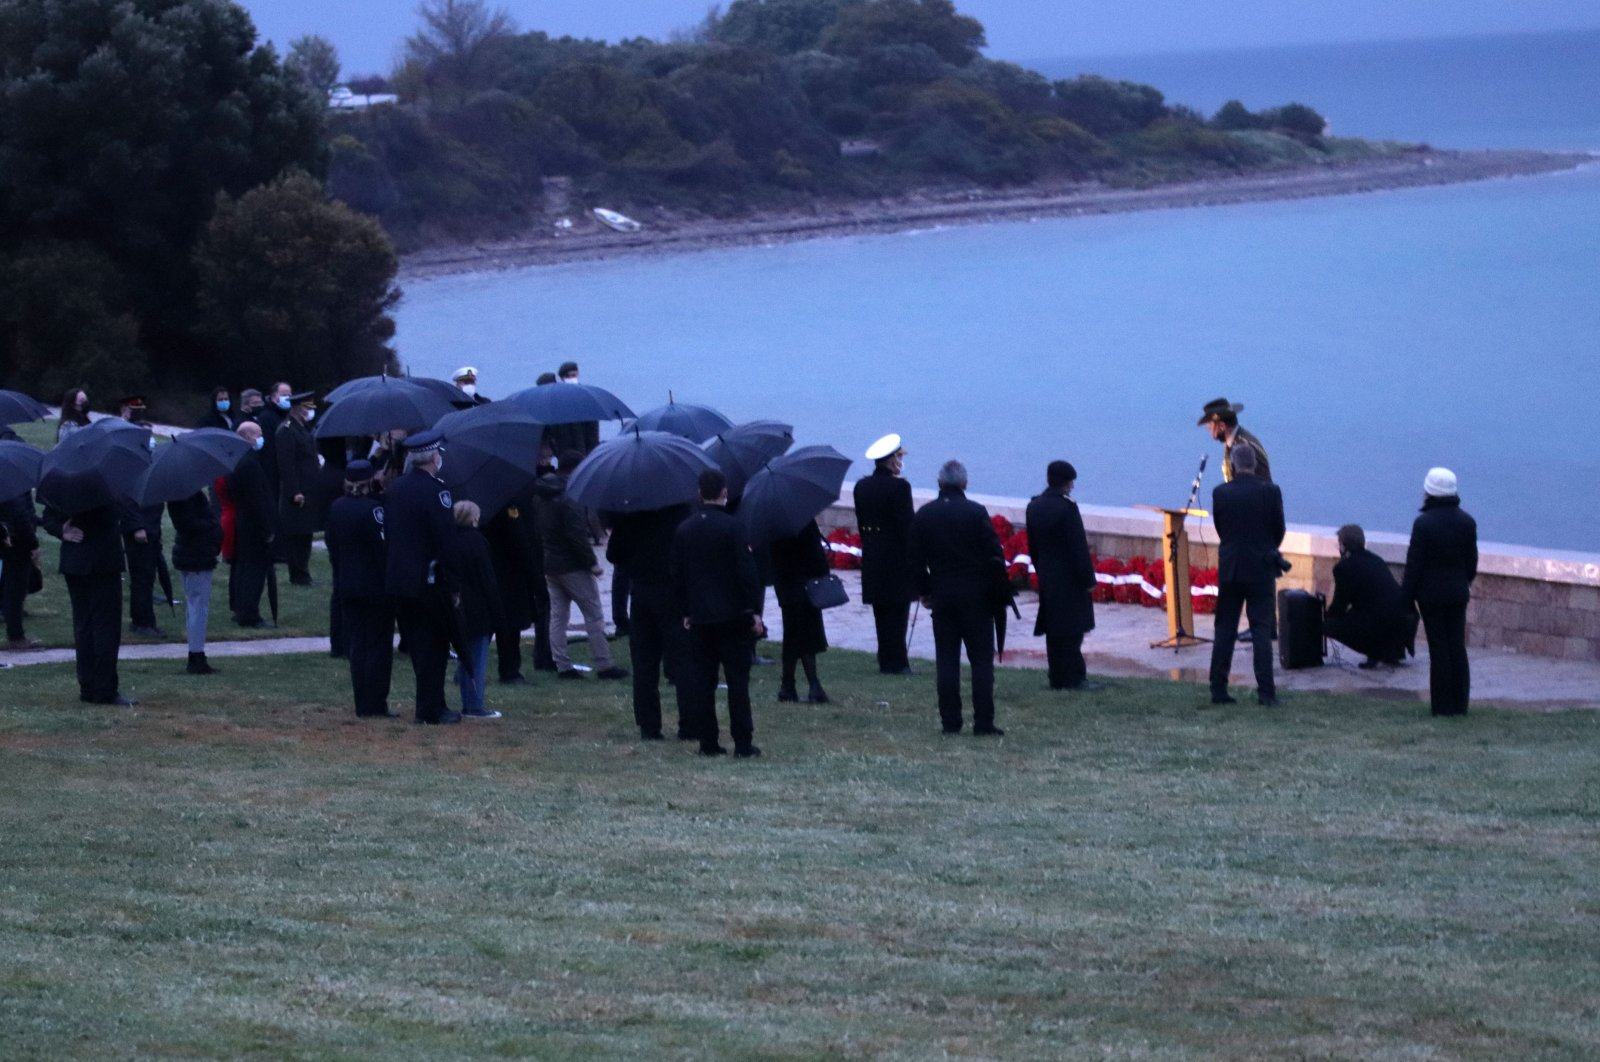 Participants attend the dawn service at Anzac Cove, in Çanakkale, western Turkey, April 25, 2021. (DHA PHOTO)